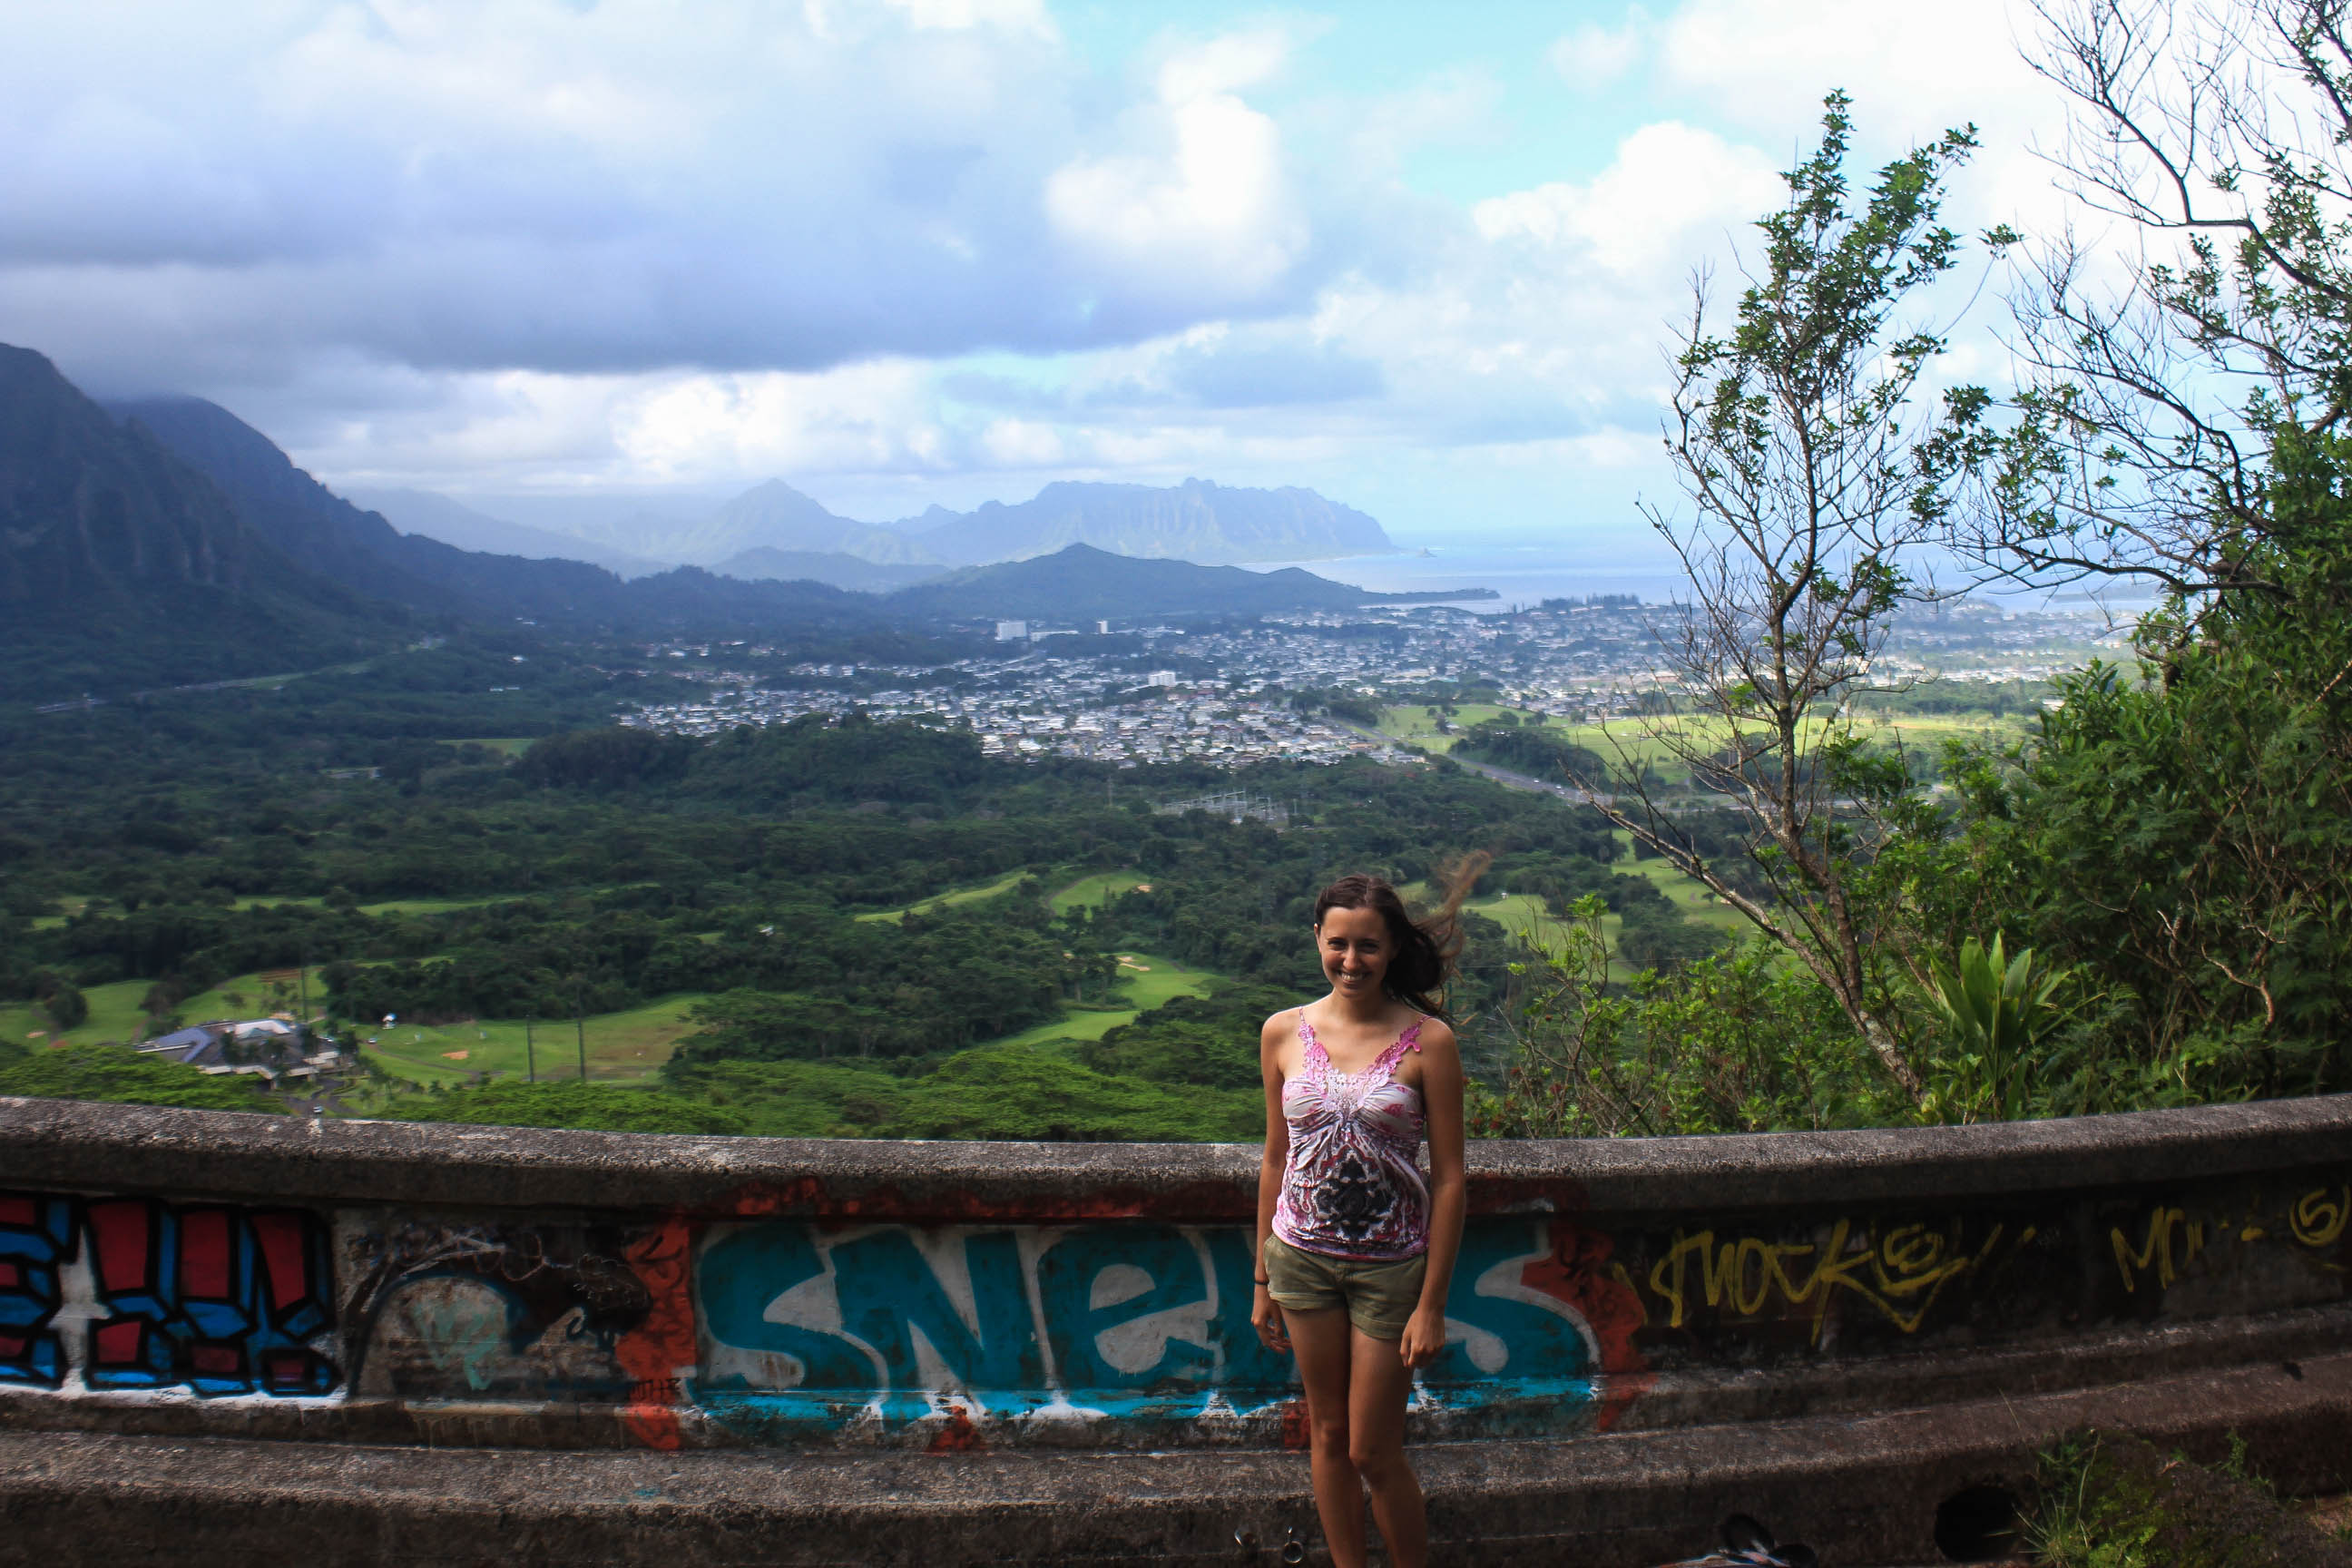 View from Old Pali Highway to Maunawili Trail